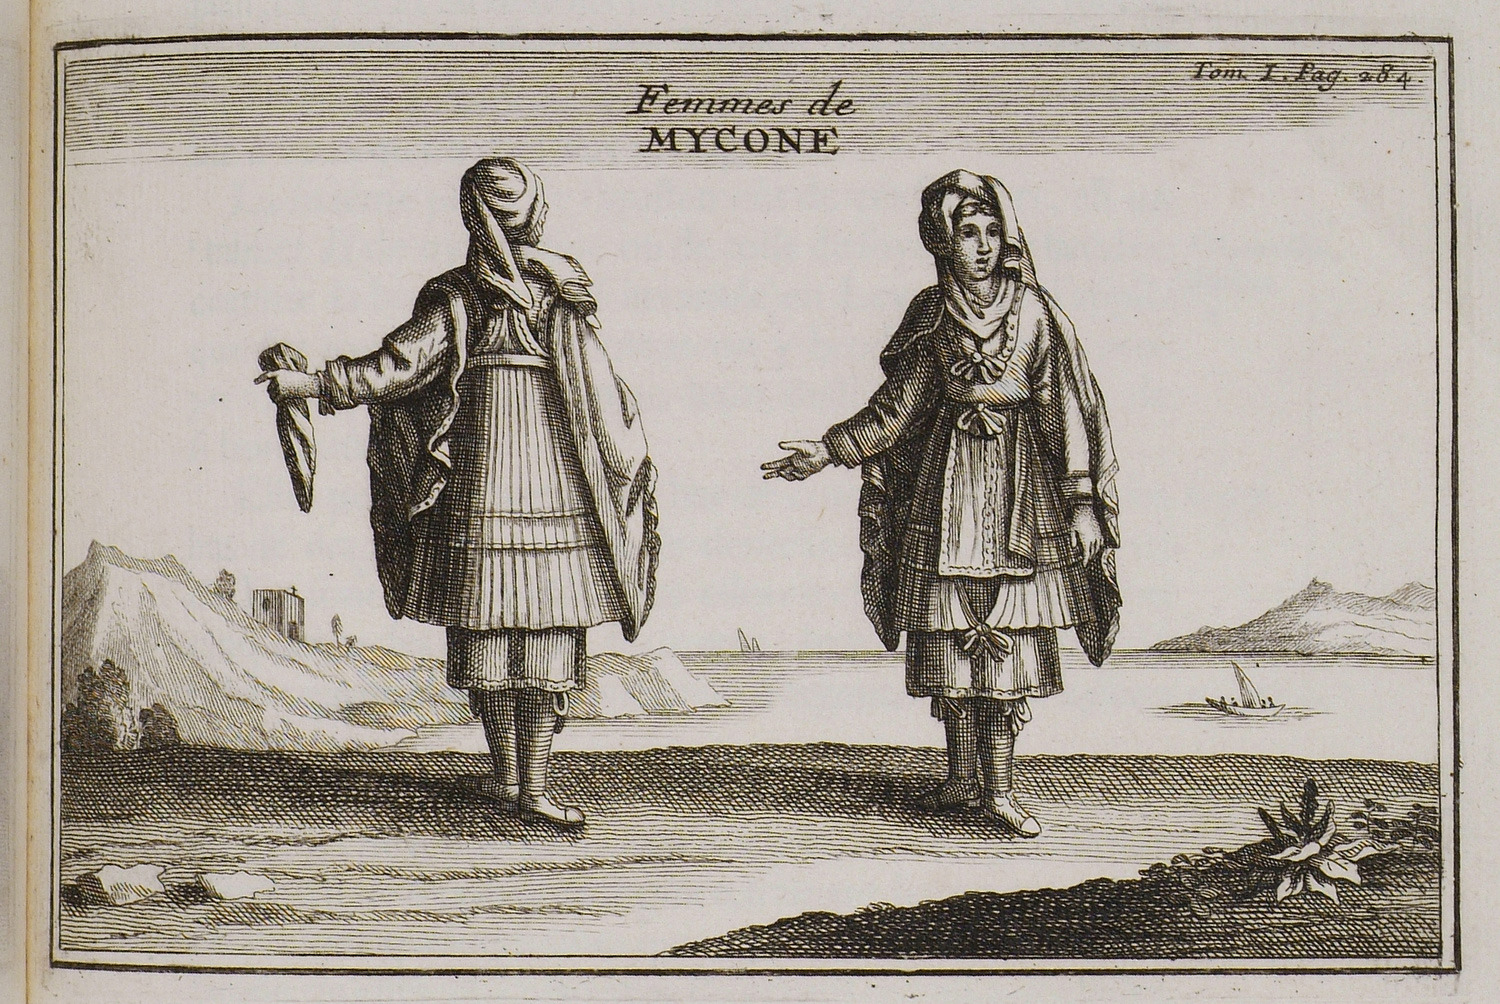 File:Femmes de MYCONE - Tournefort Joseph Pitton De - 1717.jpg